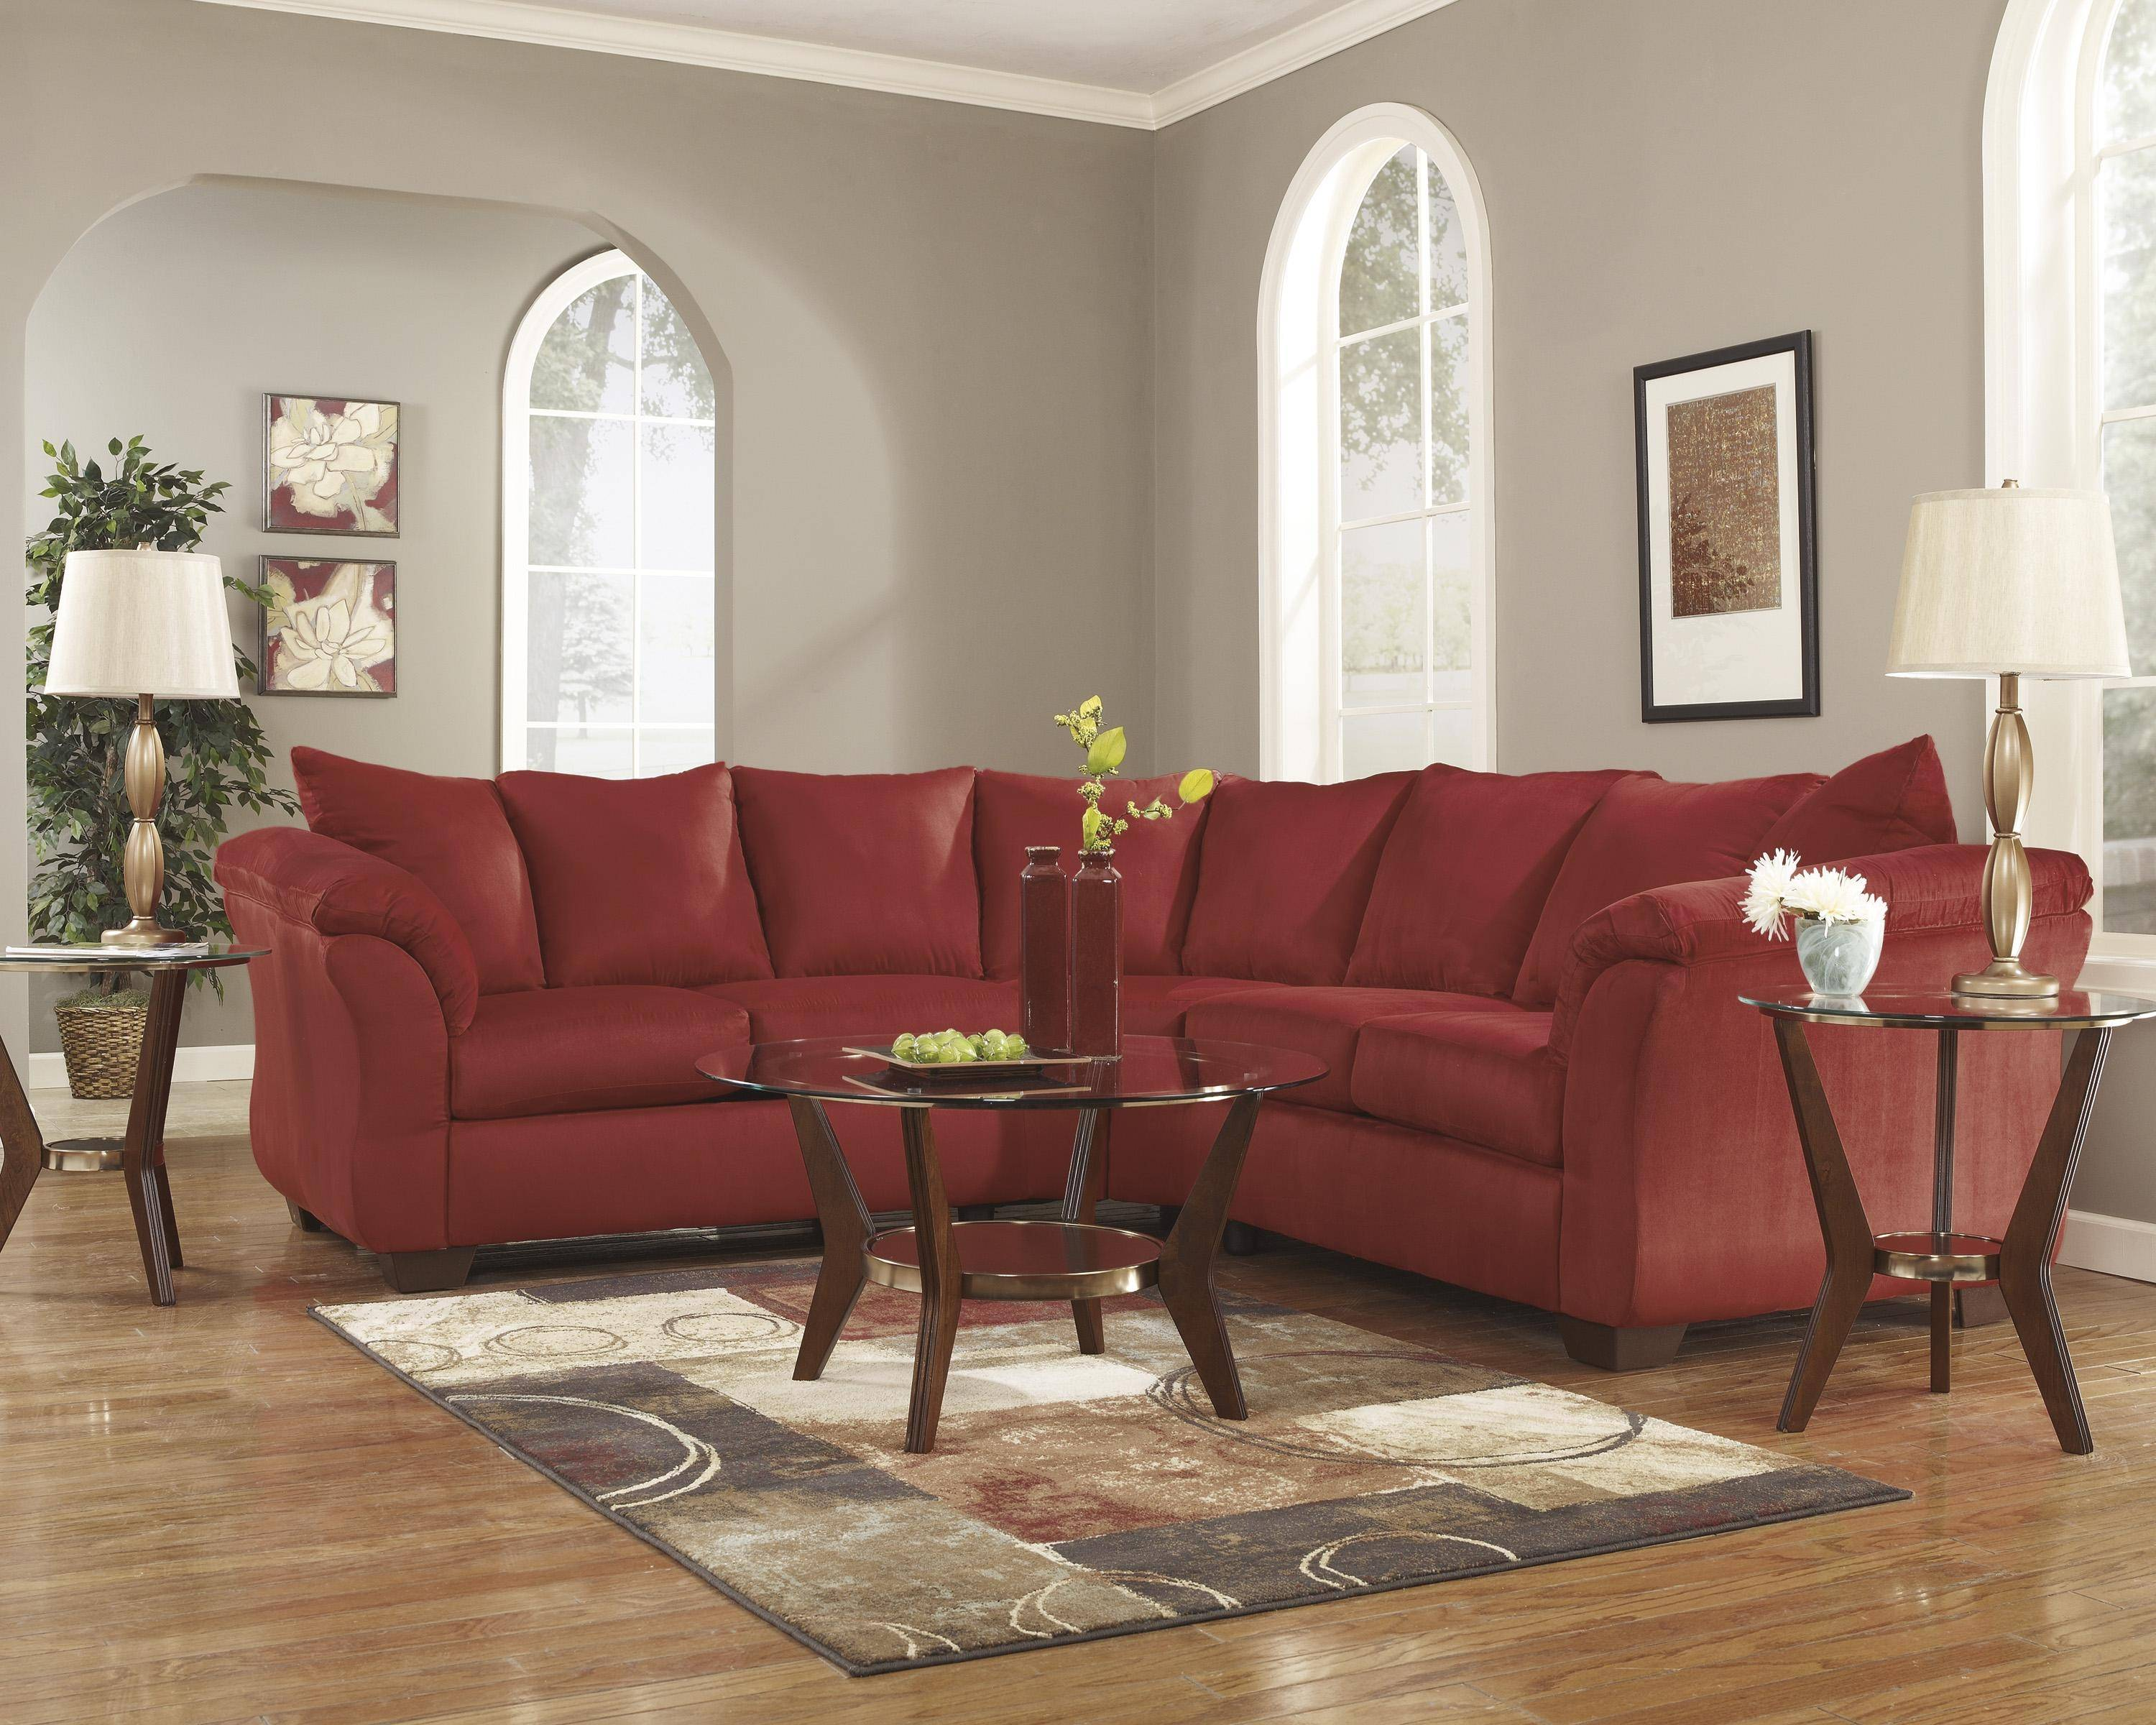 Cool Ashley Darcy 2 Piece Sectional In Salsa 75001 55 56 Kit Alphanode Cool Chair Designs And Ideas Alphanodeonline